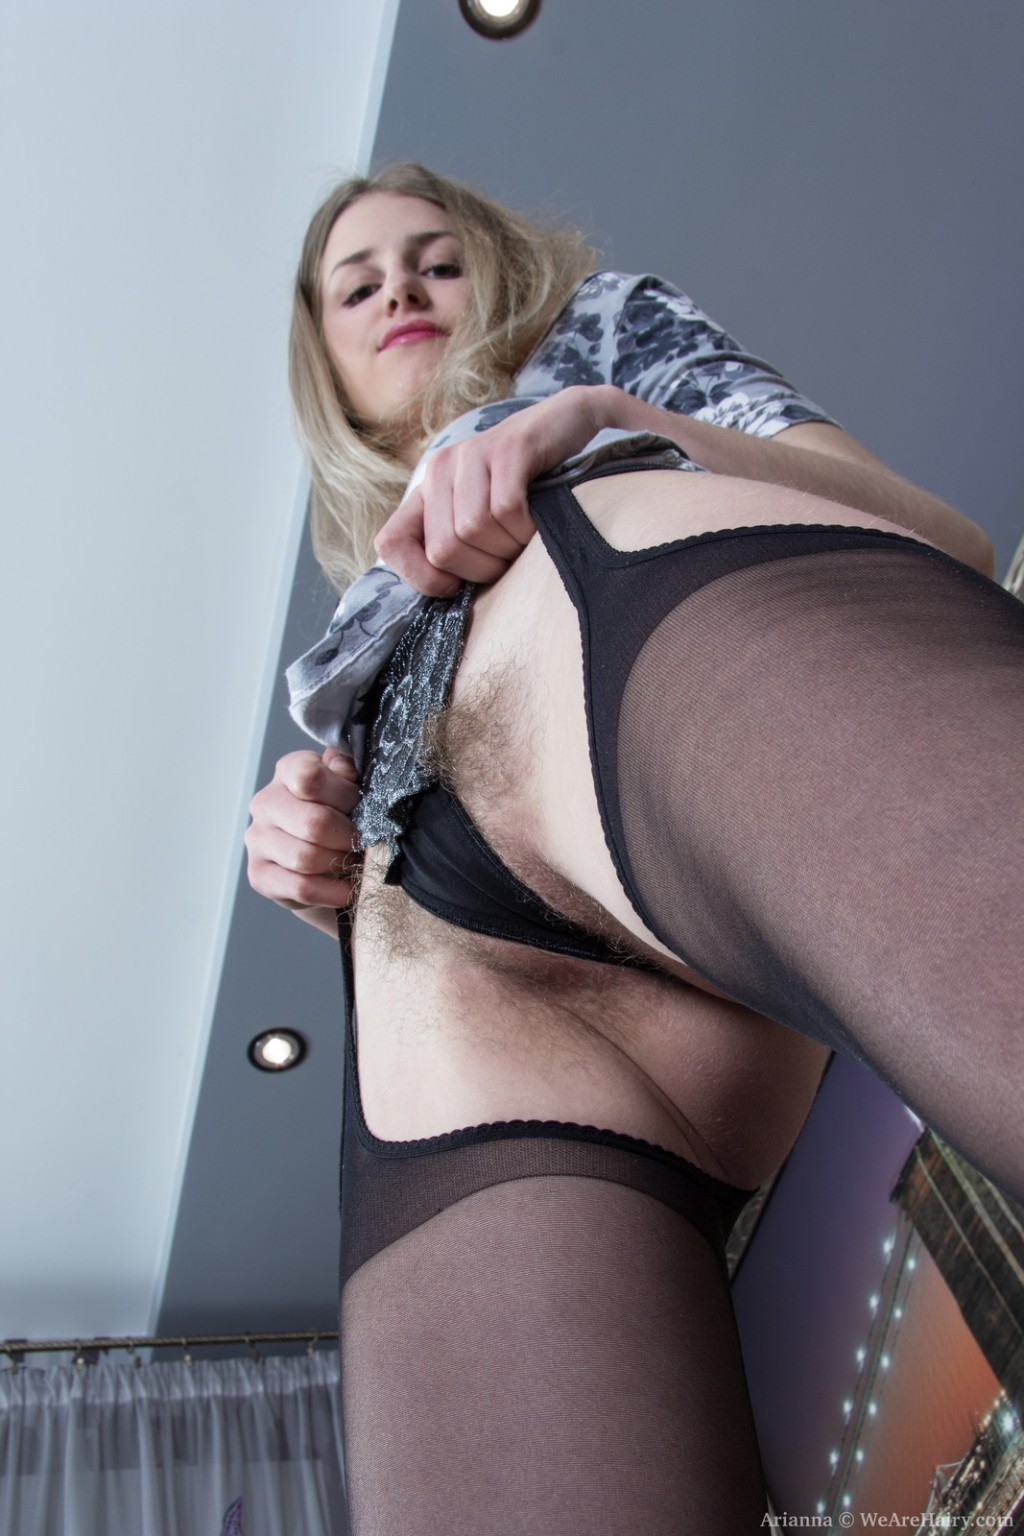 Arianna disrobes uncovered from suit and